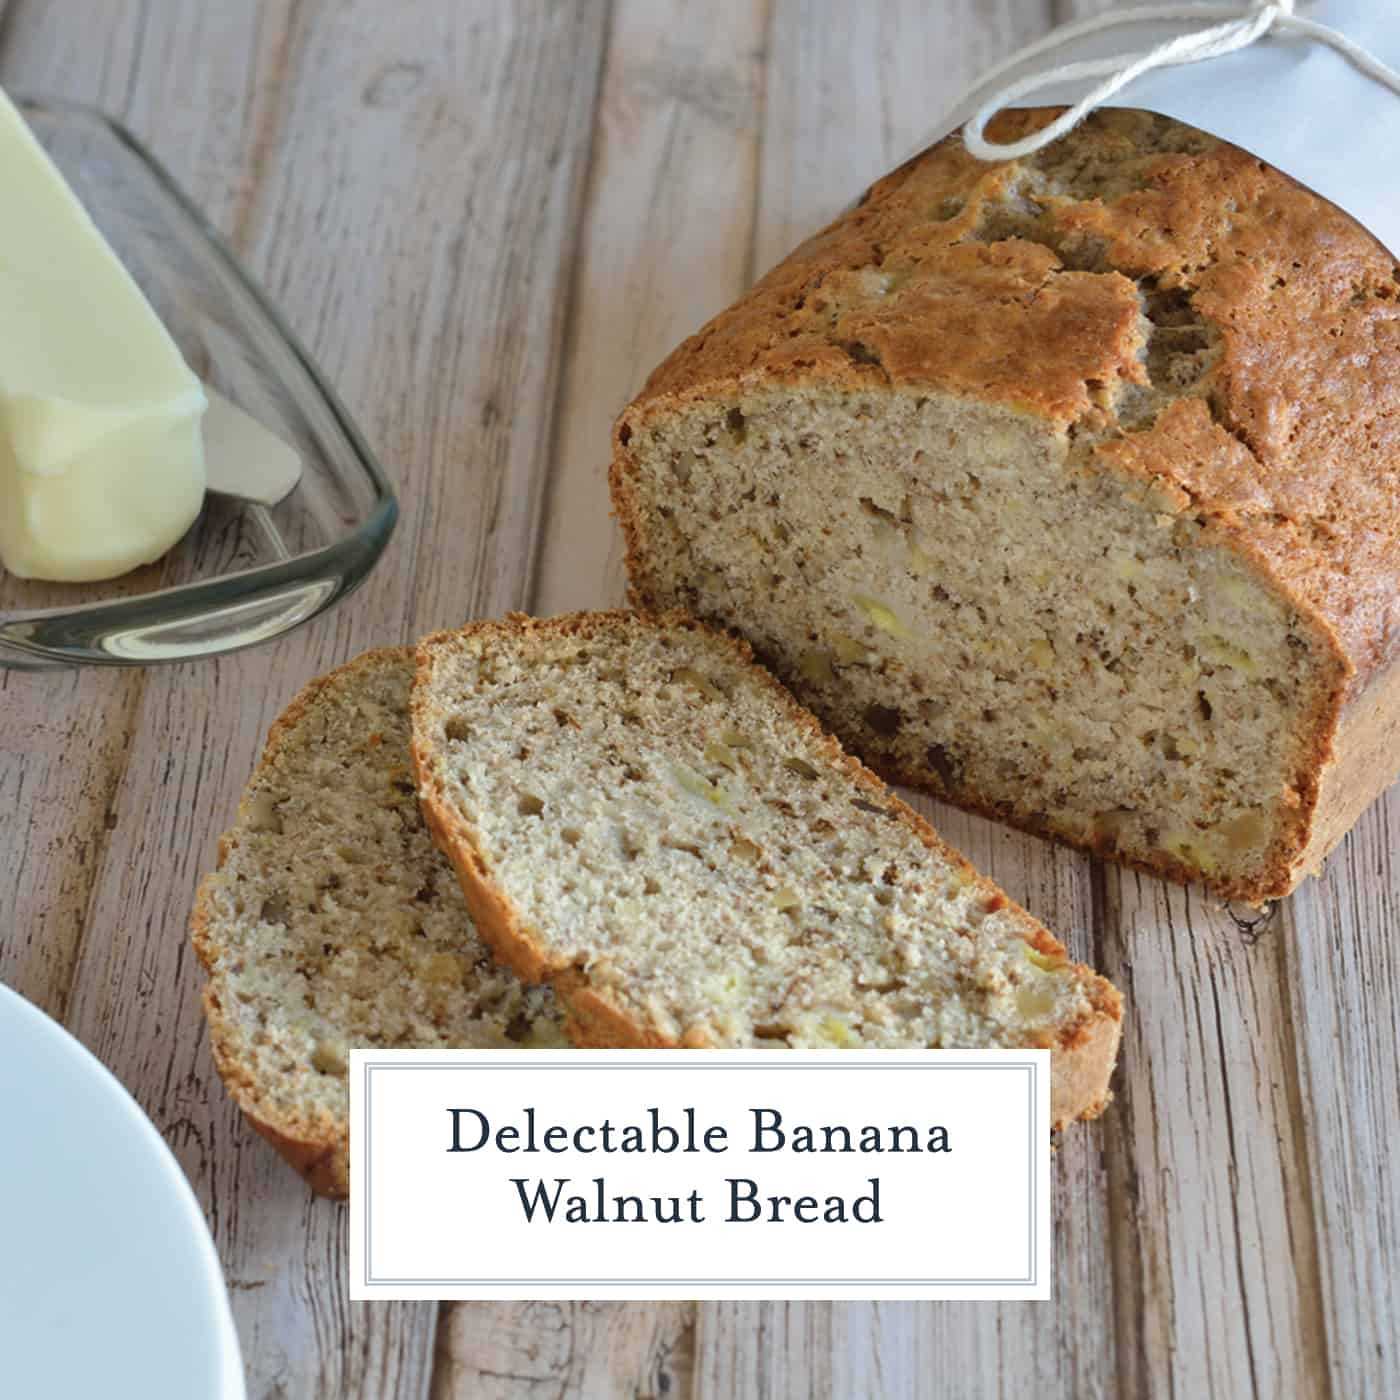 Classic Banana Walnut bread is always a winning way to use up ripe bananas. Fresh out of the oven or freezer friendly, this is the best banana bread recipe out there! #bananabread #bananawalnutbread www.savoryexperiments.com